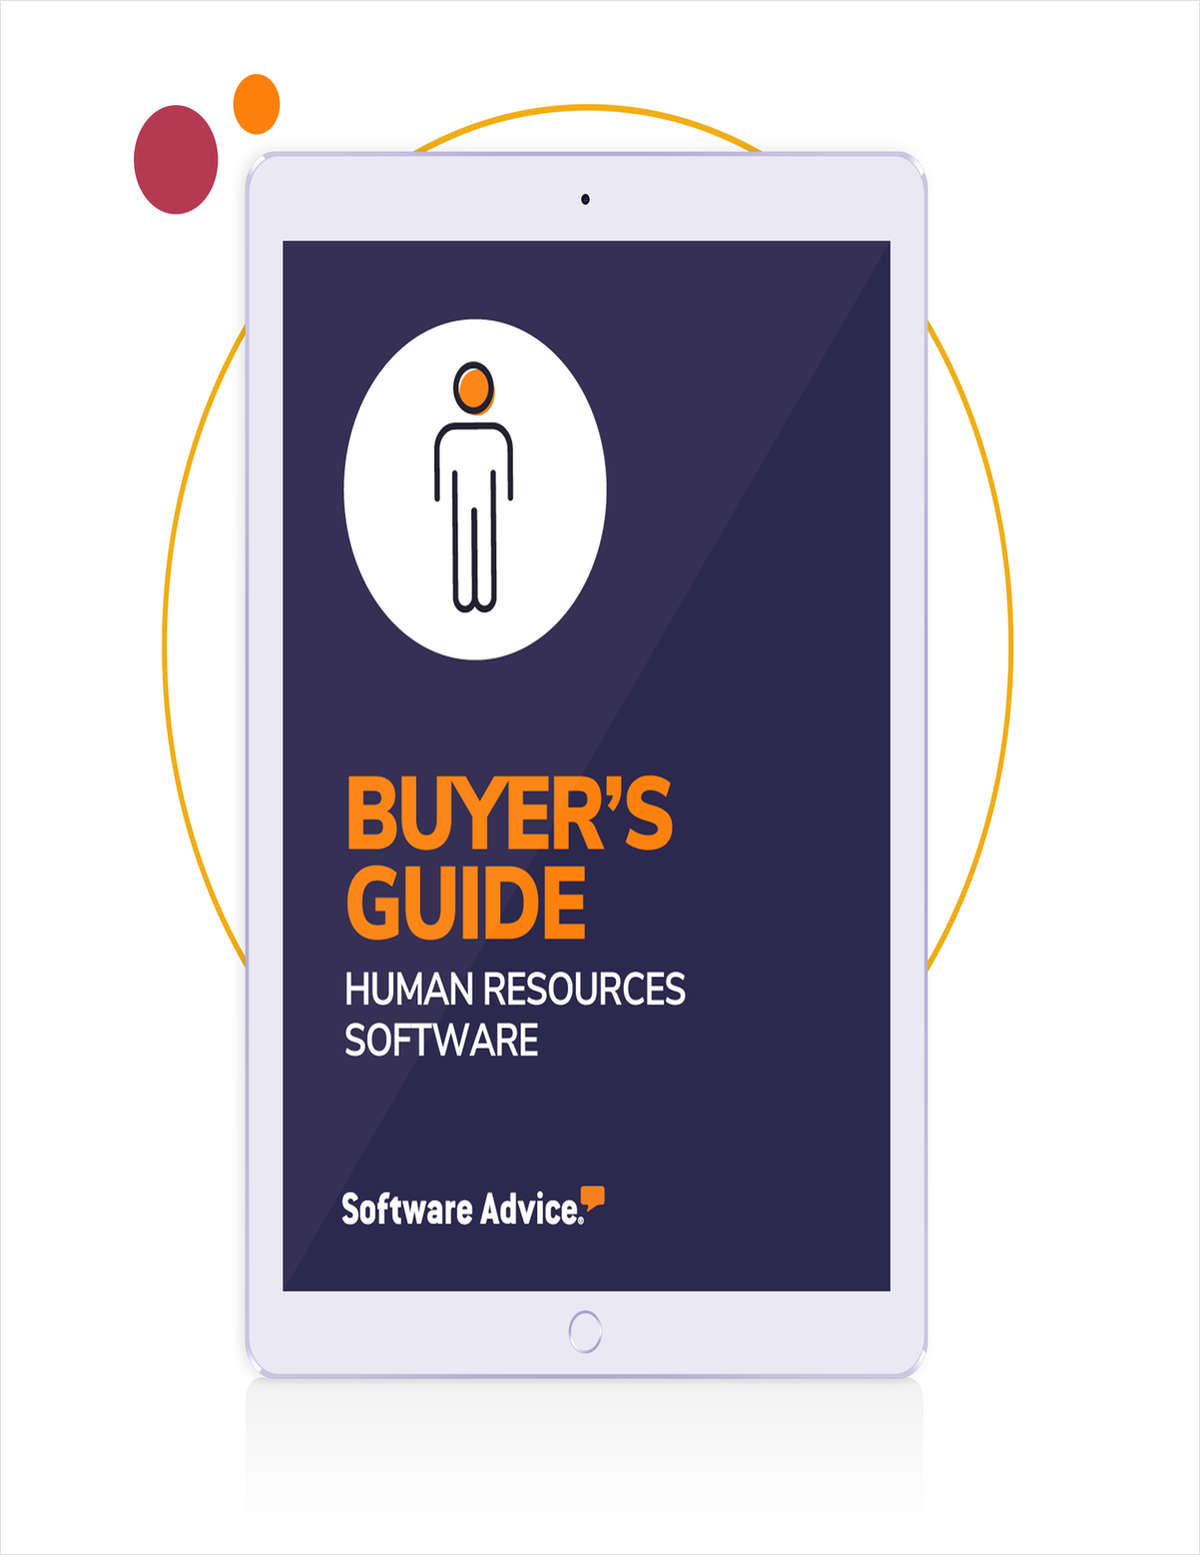 Buying Human Resources Software in 2020? Read This Guide First